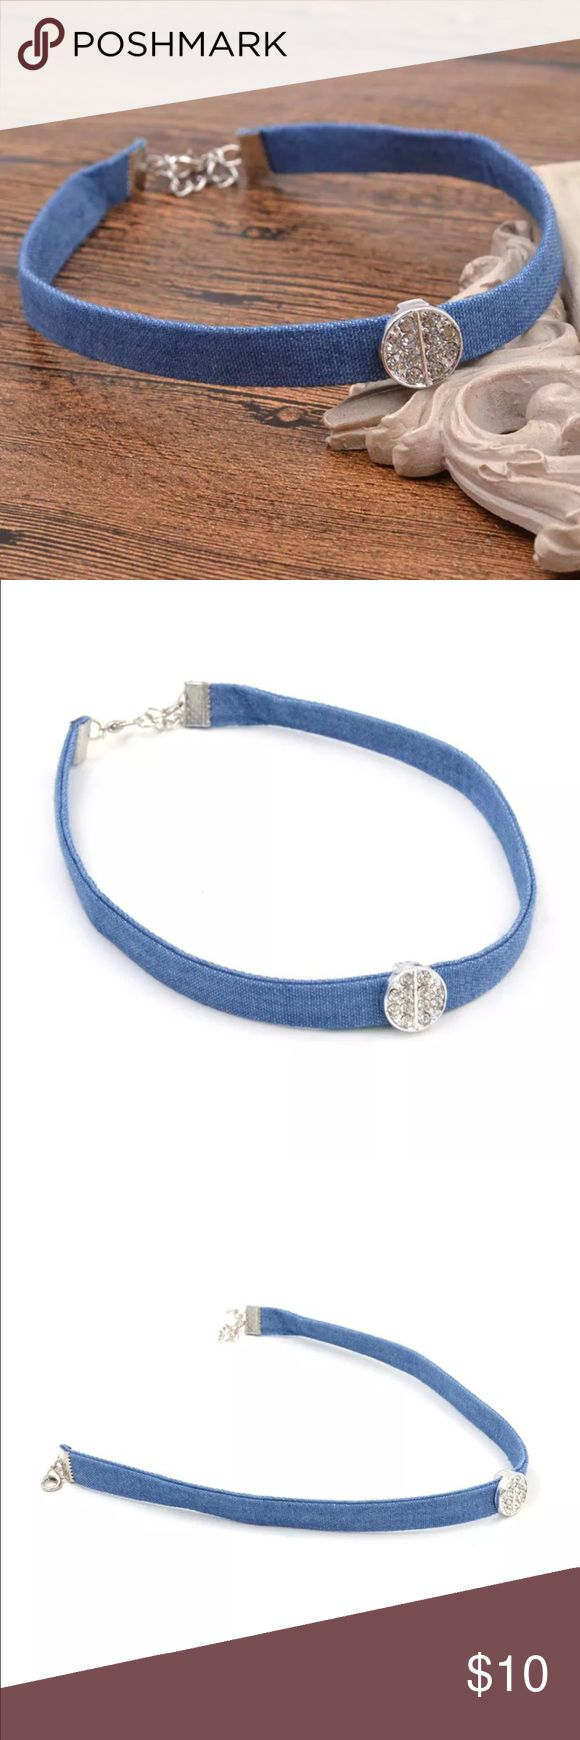 New✨Denim Choker With Crystal Rhinestone Pendant😍 New✨Denim Choker With Crystal Rhinestone Pendant😍  🔸Brand New✨ 🔸PRICE IS FIRM- already listed at lowest price  🔸If you want to save please look into bundling  🔸In Stock 🔸No Trades 🔸Will ship same day as long as order is received by 1:00pm PST Jewelry Necklaces